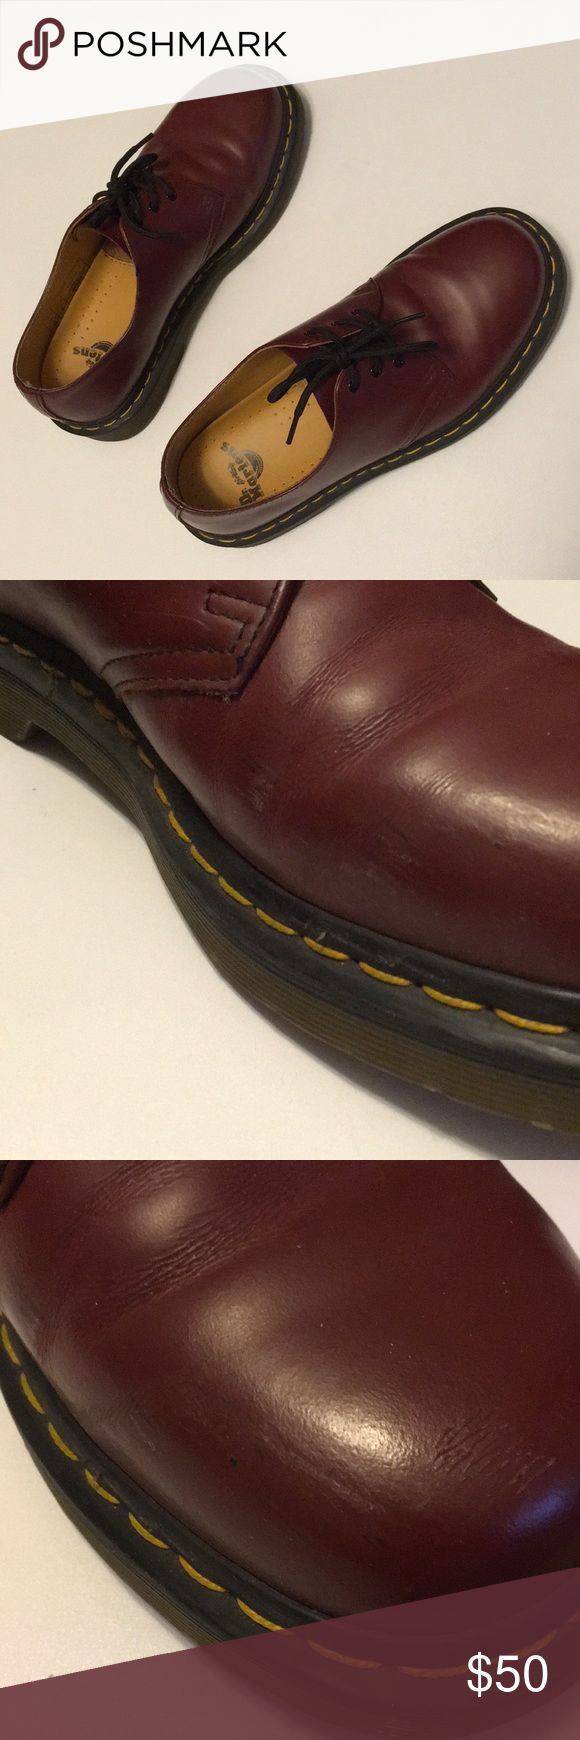 Doc Martens oxblood originals 3-eye UK 6. Oxblood oxfords. Used condition. Illustrated what is beyond considered normal wear/scuffs. UK 6. Thanks for looking, and I'm open to offers! Dr. Martens Shoes Flats & Loafers